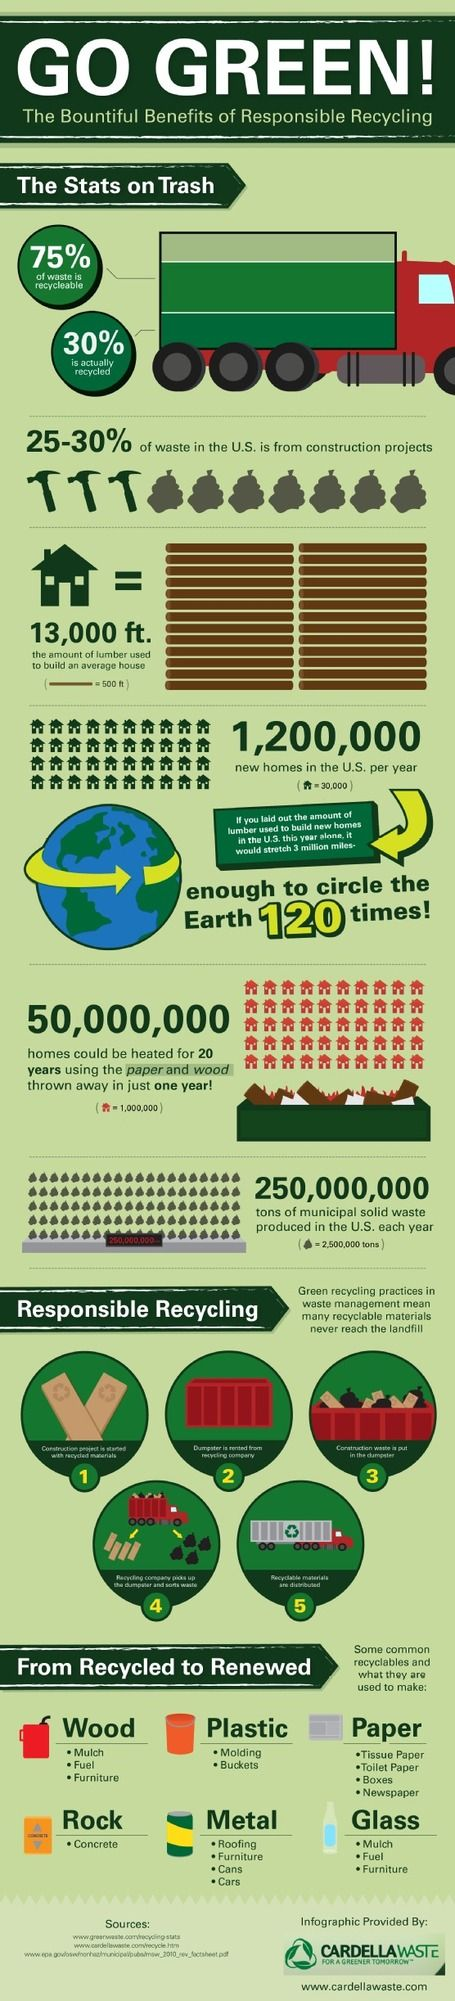 16 best images about go green on pinterest recycling for Facts about going green